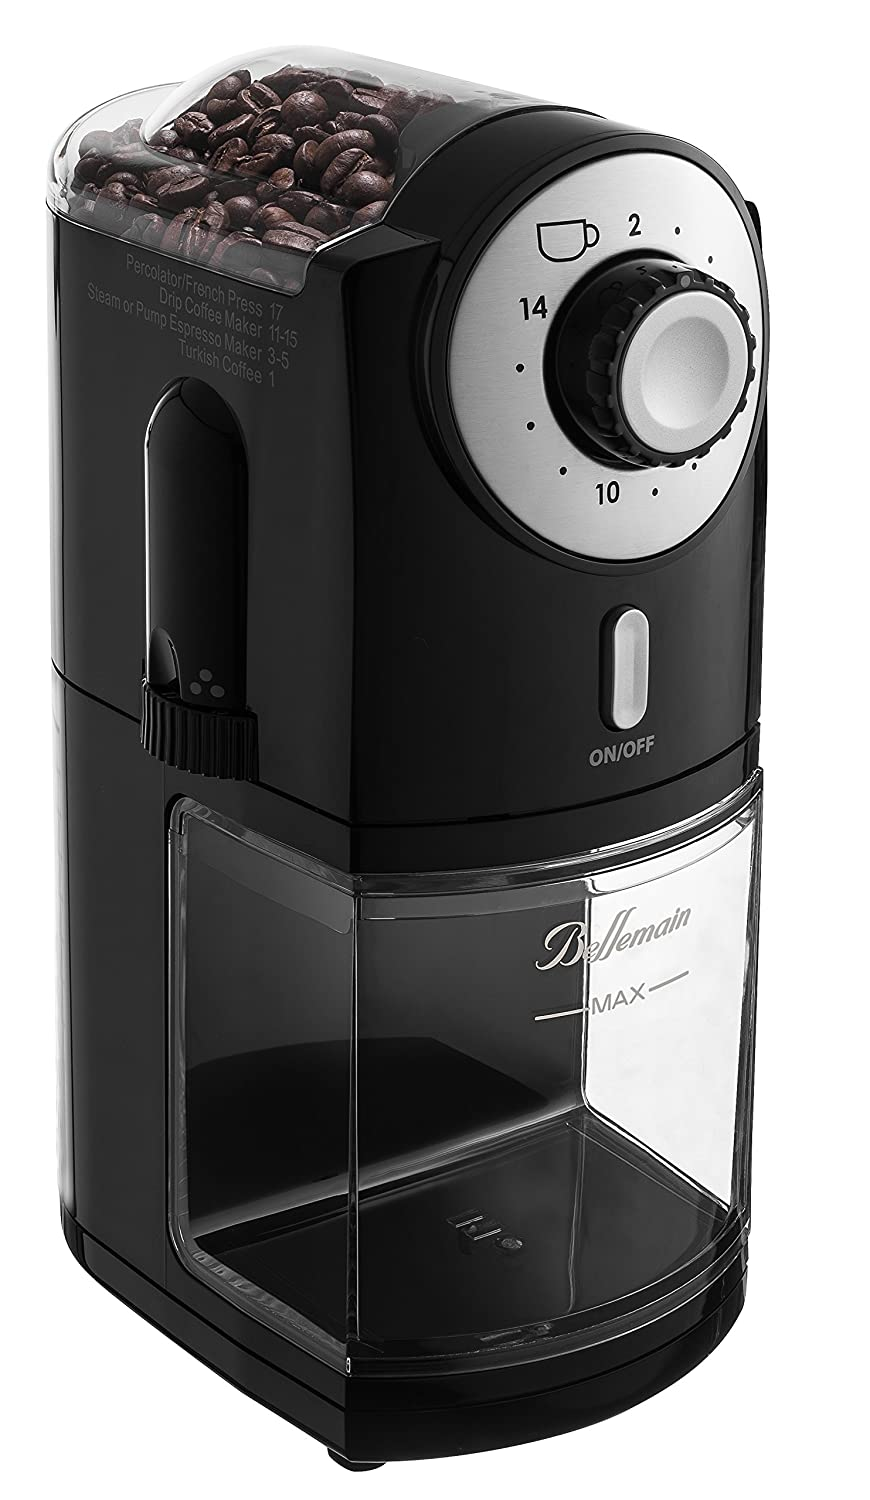 Top Rated Bellemain Burr Coffee Grinder with 17 Settings for Drip, Percolator,, French Press and Turkish Coffee Makers.